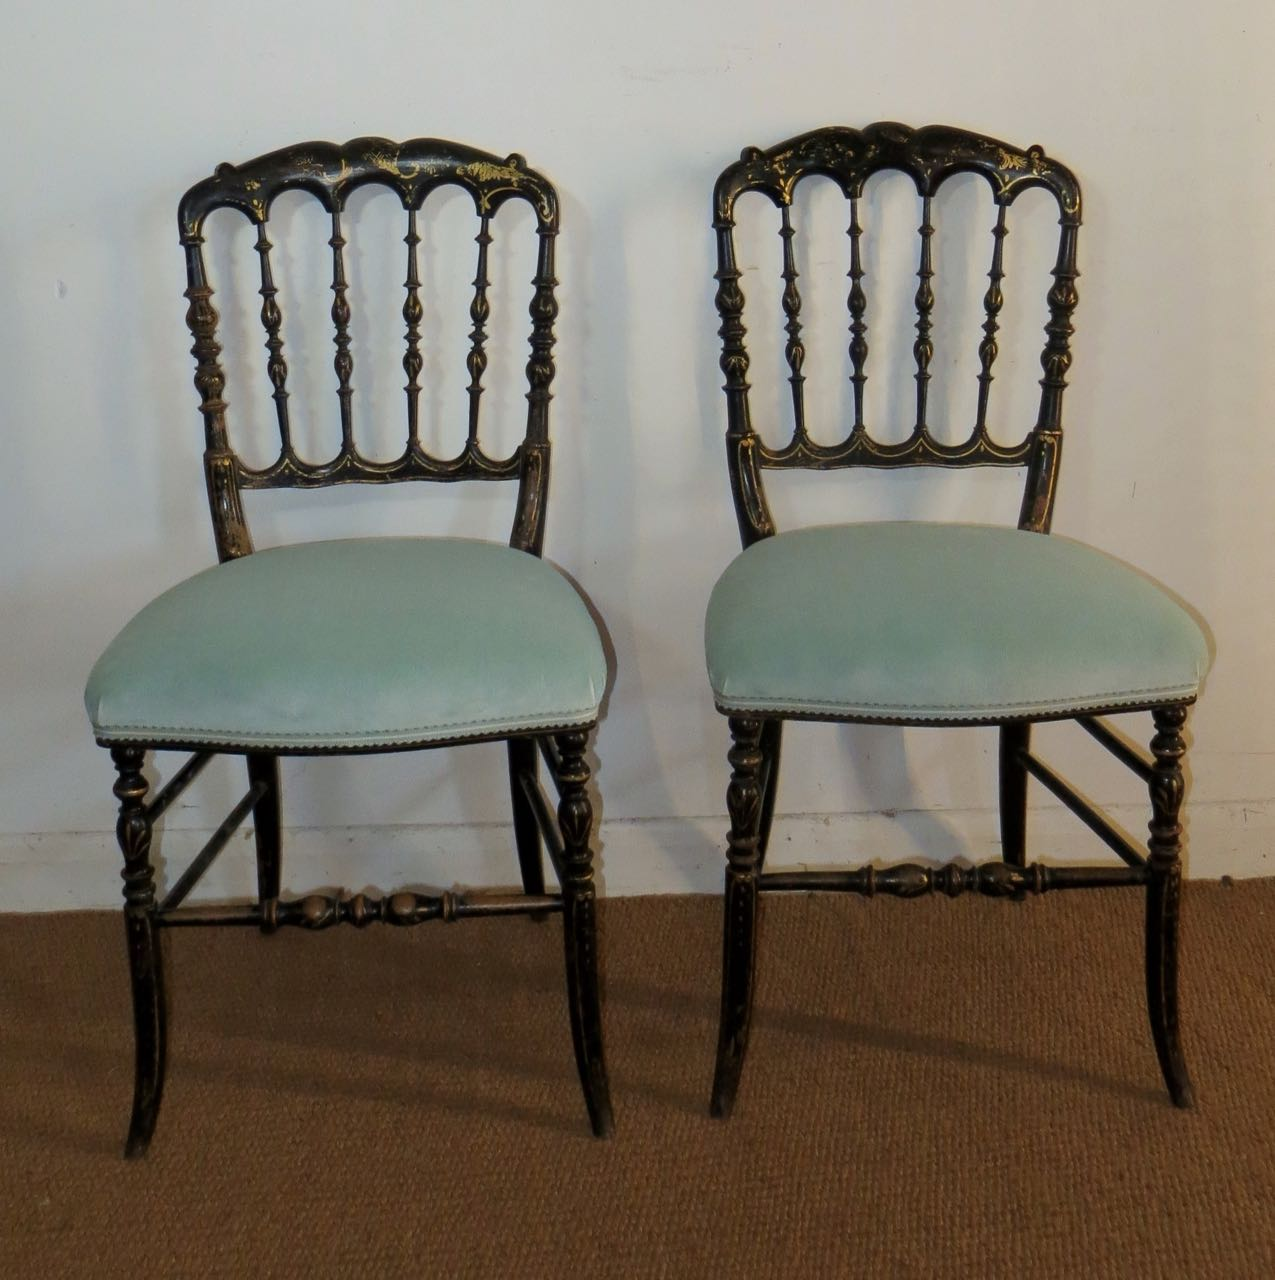 Ebonies French Napoleon 111 chairs